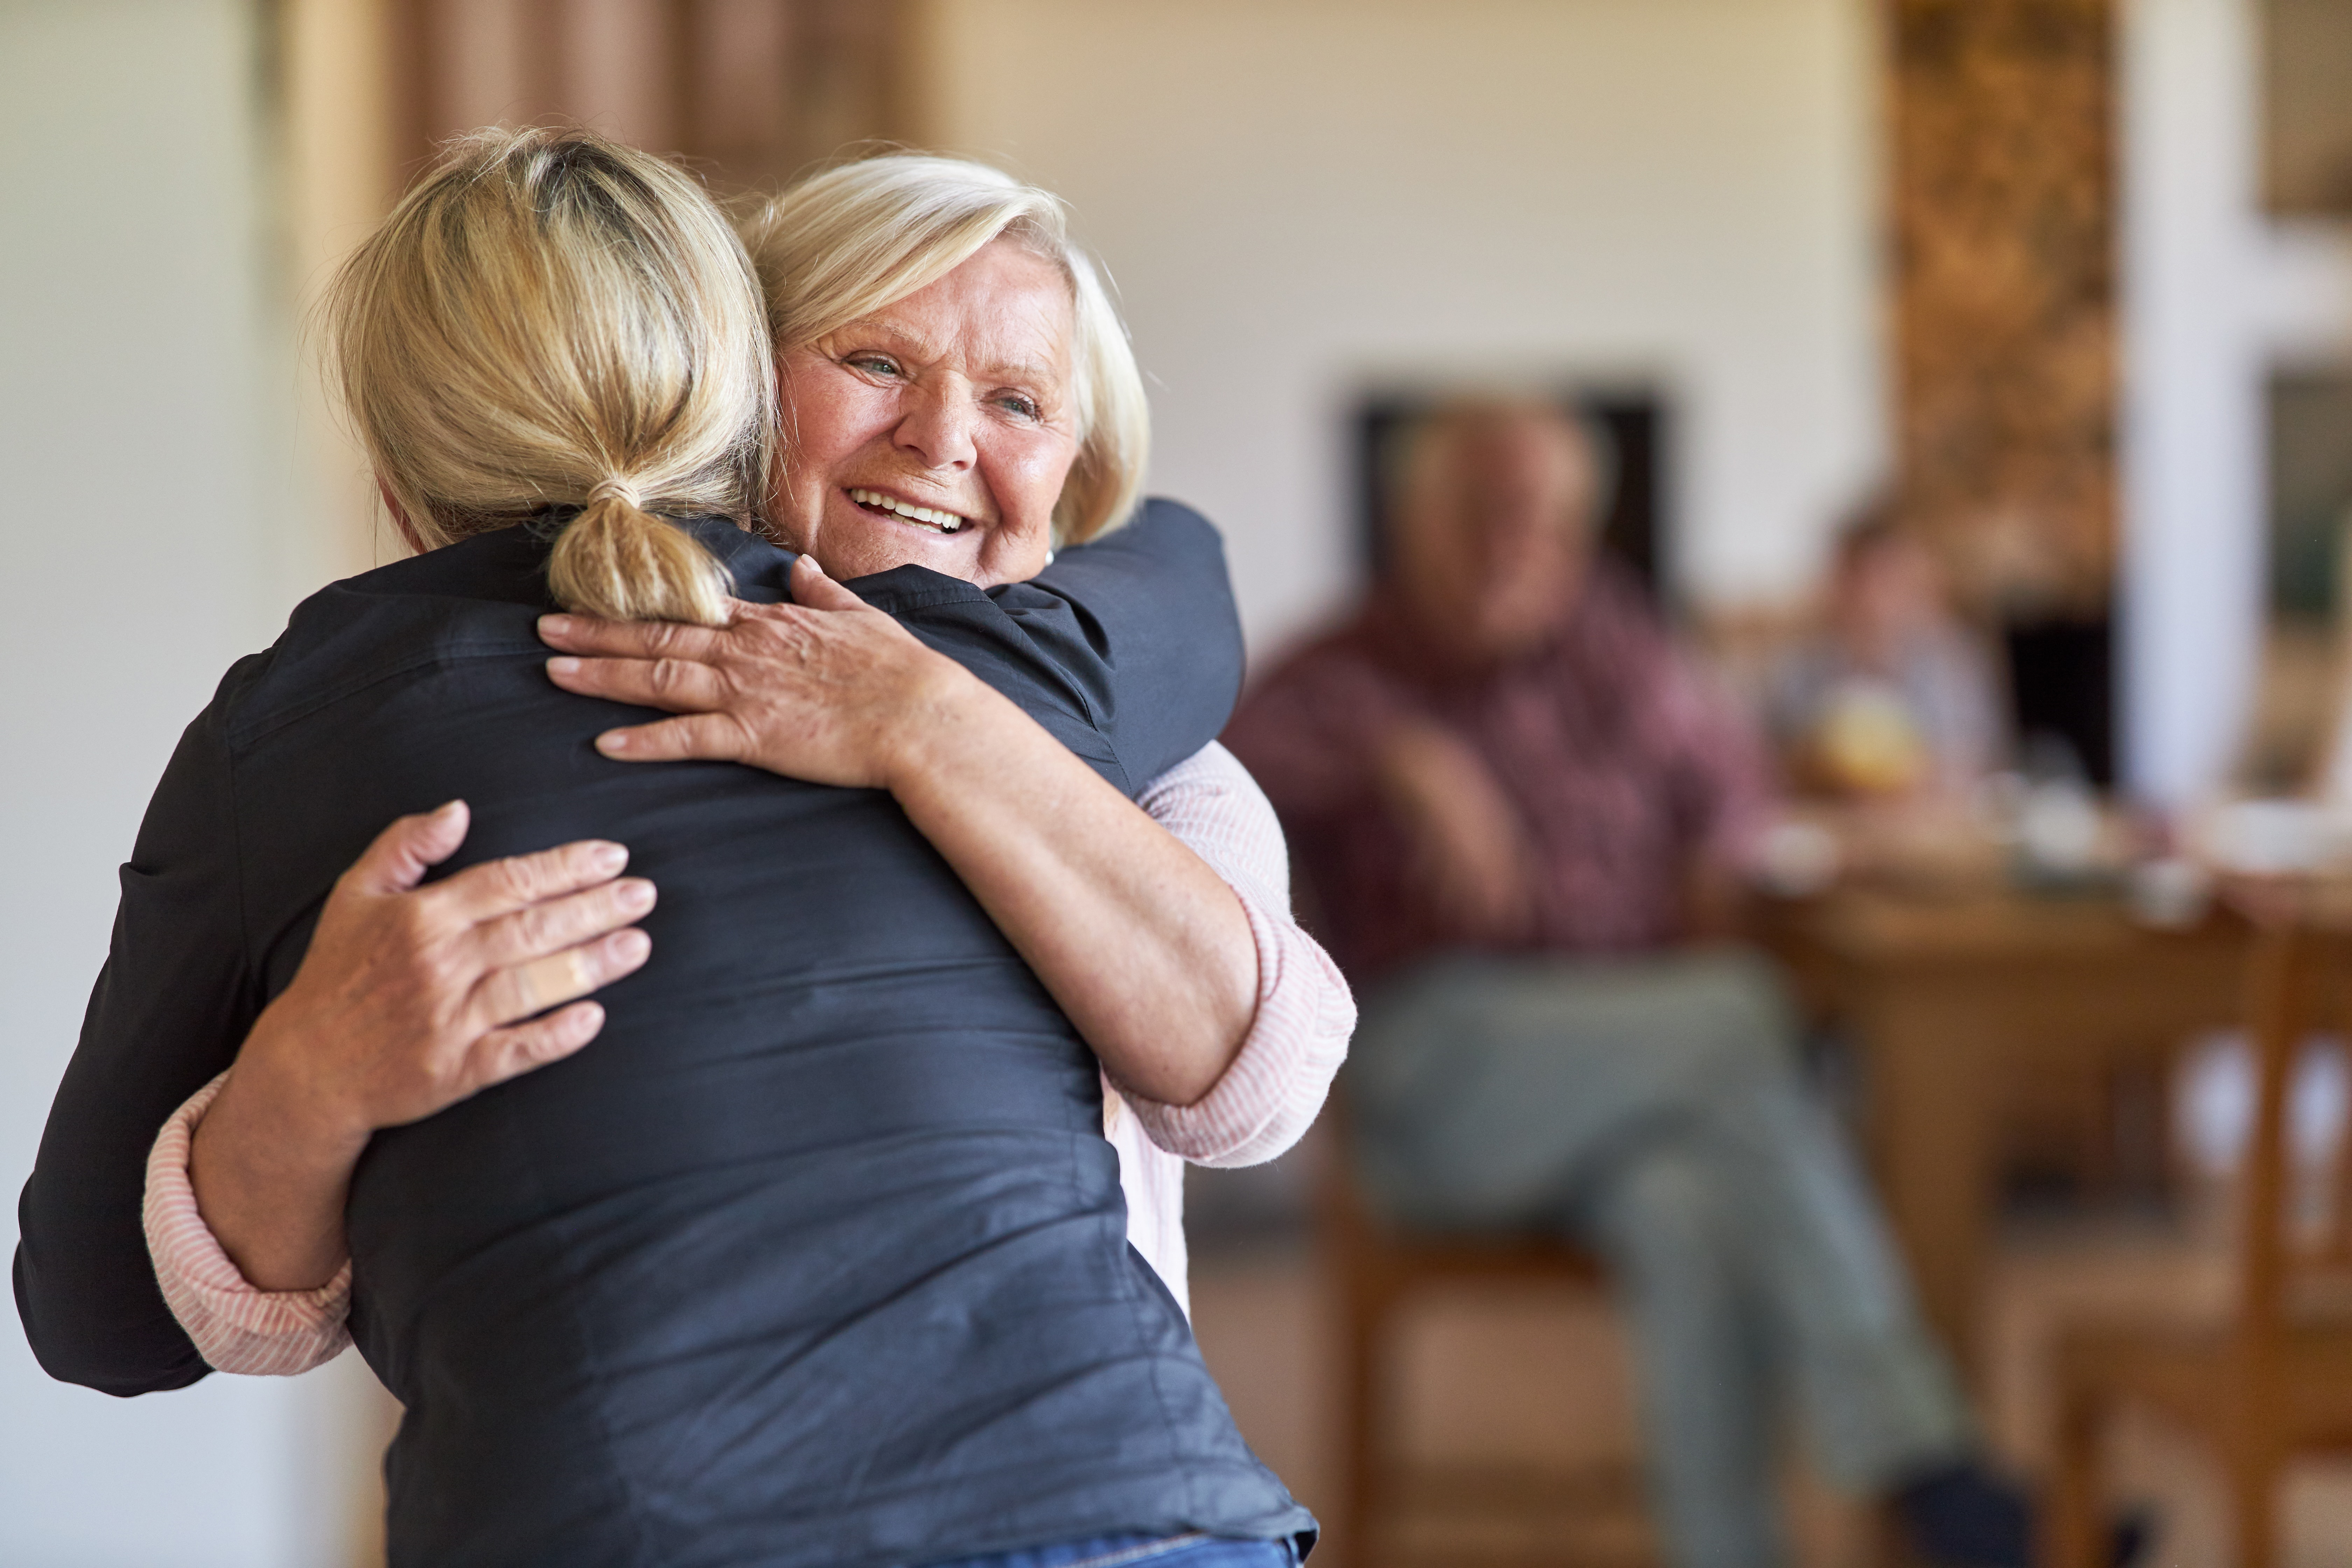 The healing power of hugs for seniors